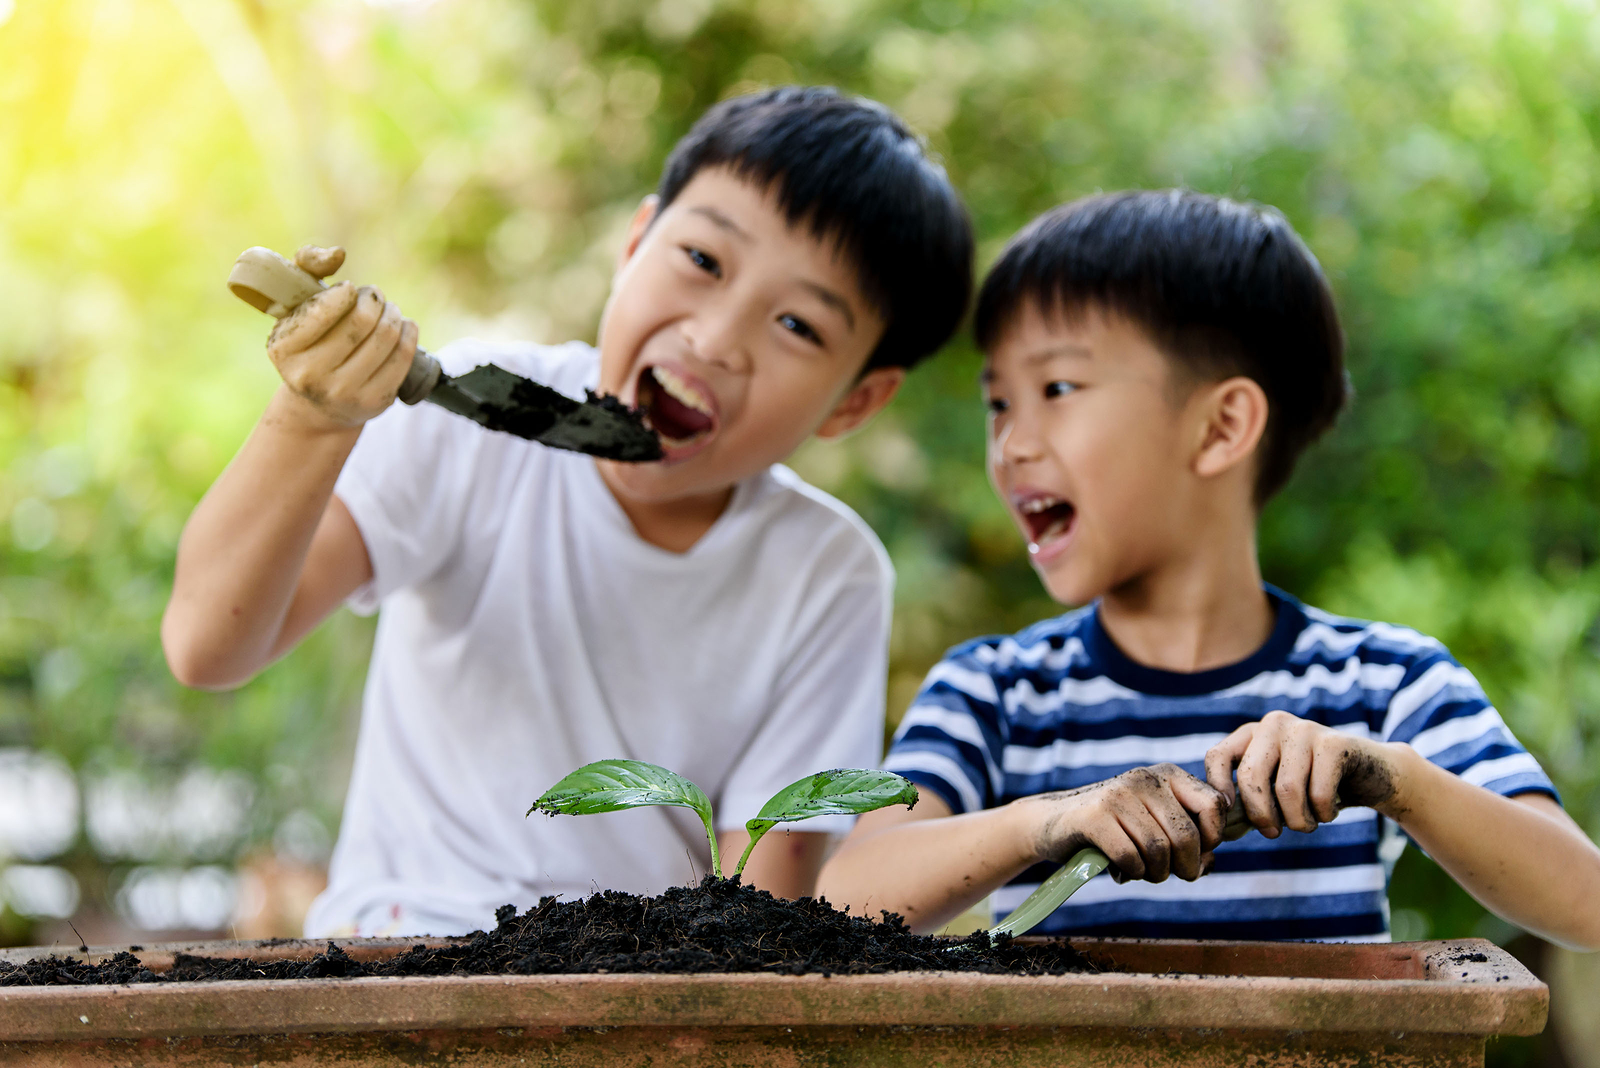 3 Reasons You Should Let Your Kid Eat Dirt